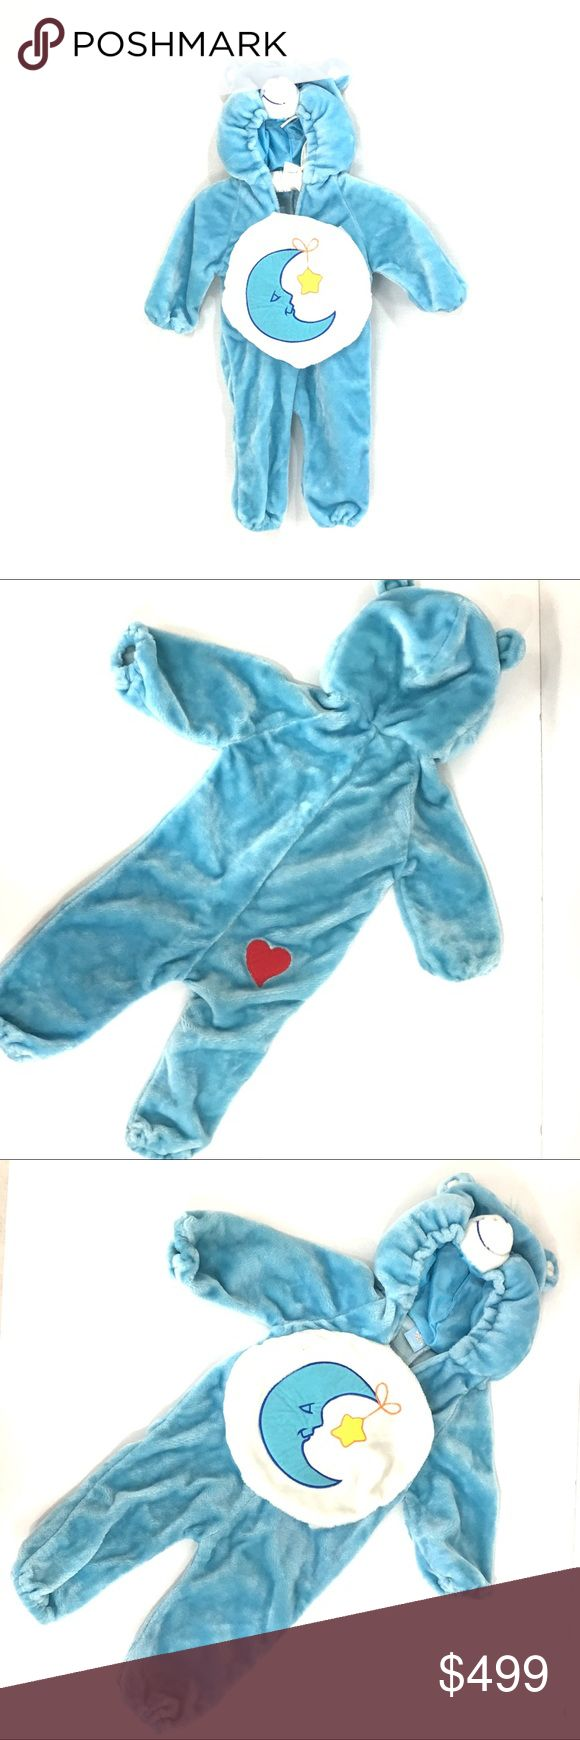 Toddlers CareBear bedtime Bear costume No size. Vintage. Super rare and hard to find. No size. Fits approx 18-24 months. Wear related to its age. View all pictures throughly   🌹no trades 🌹discounts on bundles of 2+  🌹1000 items listed, take a peak!  🌹suggested user, posh compliant:) Costumes